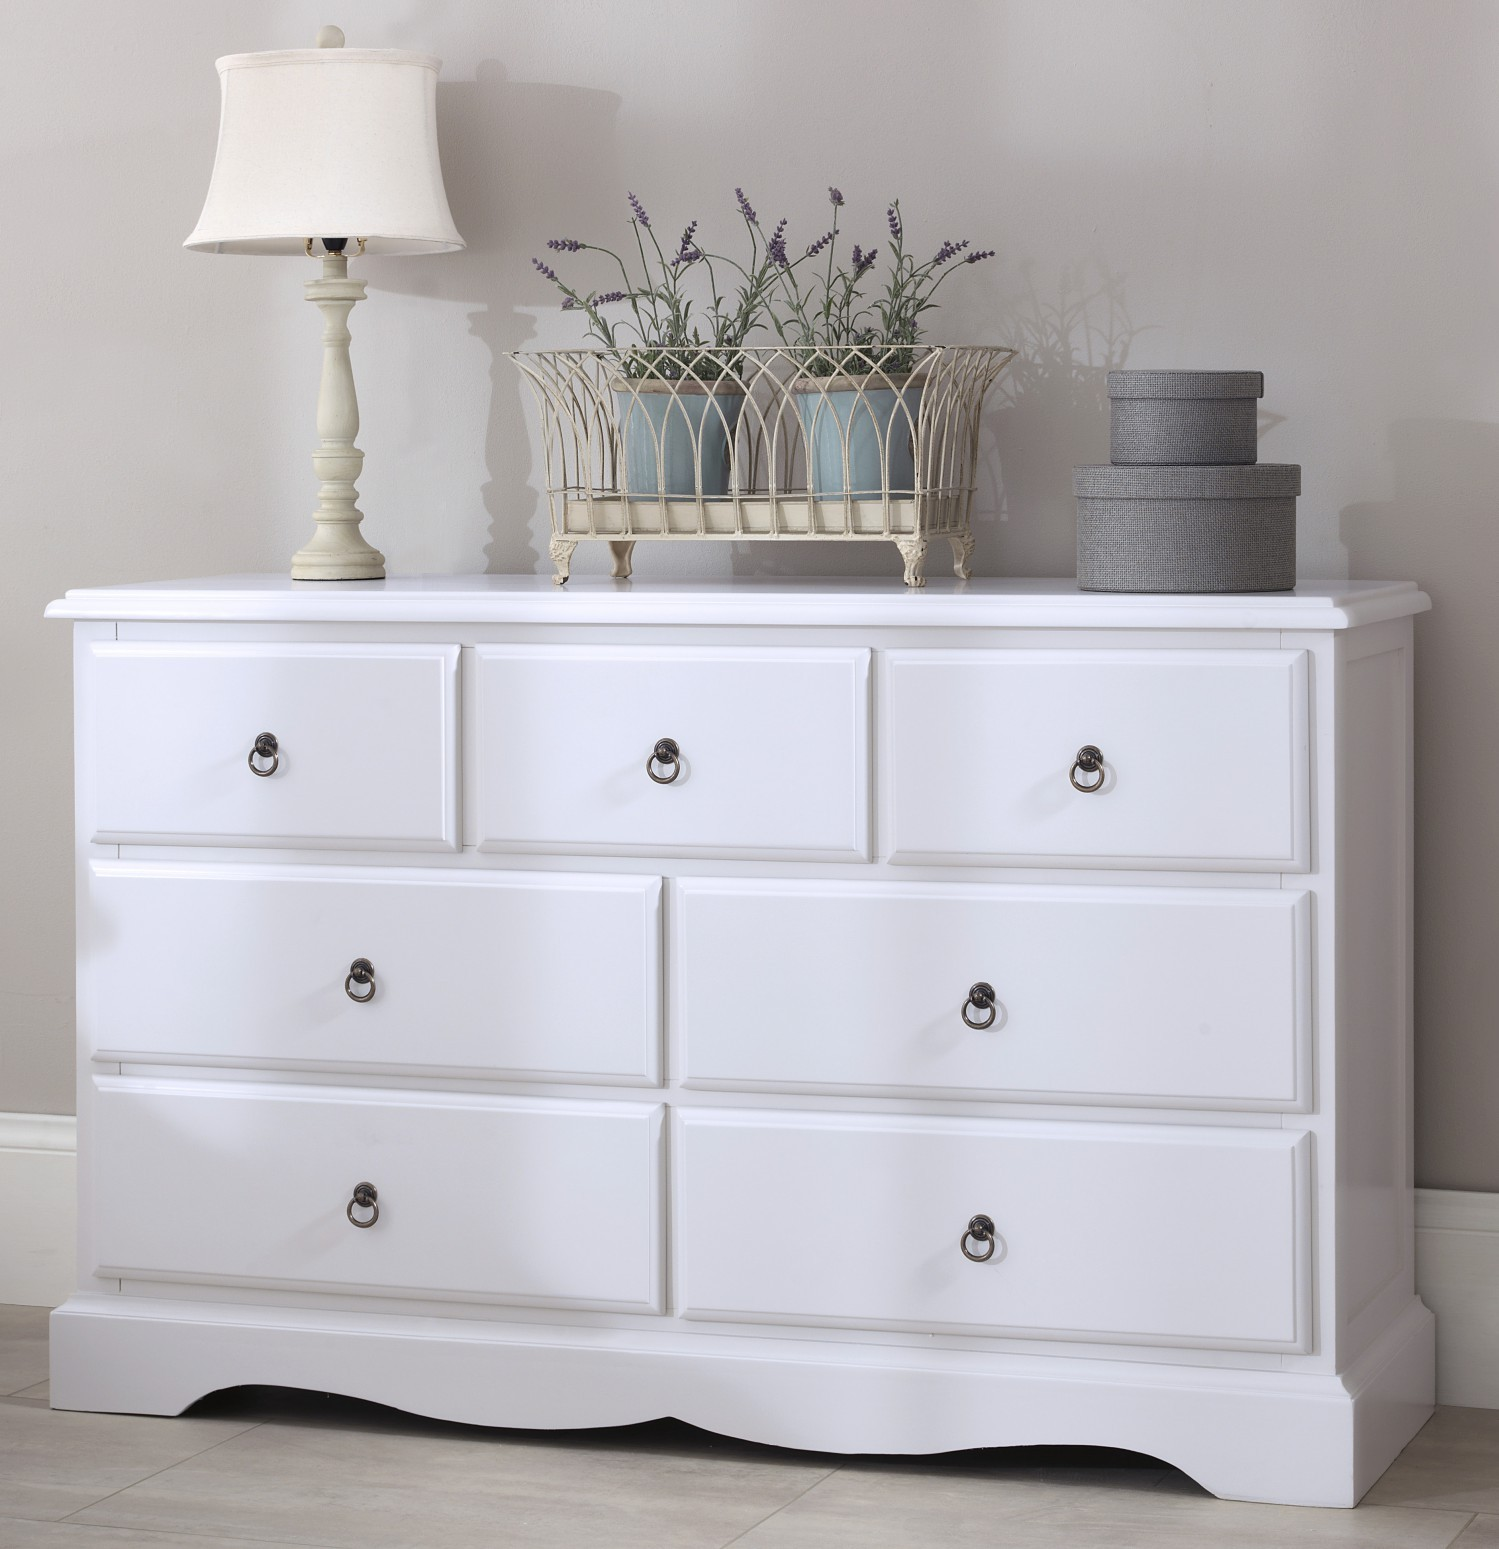 Image of: 7 Drawer Chest Decor